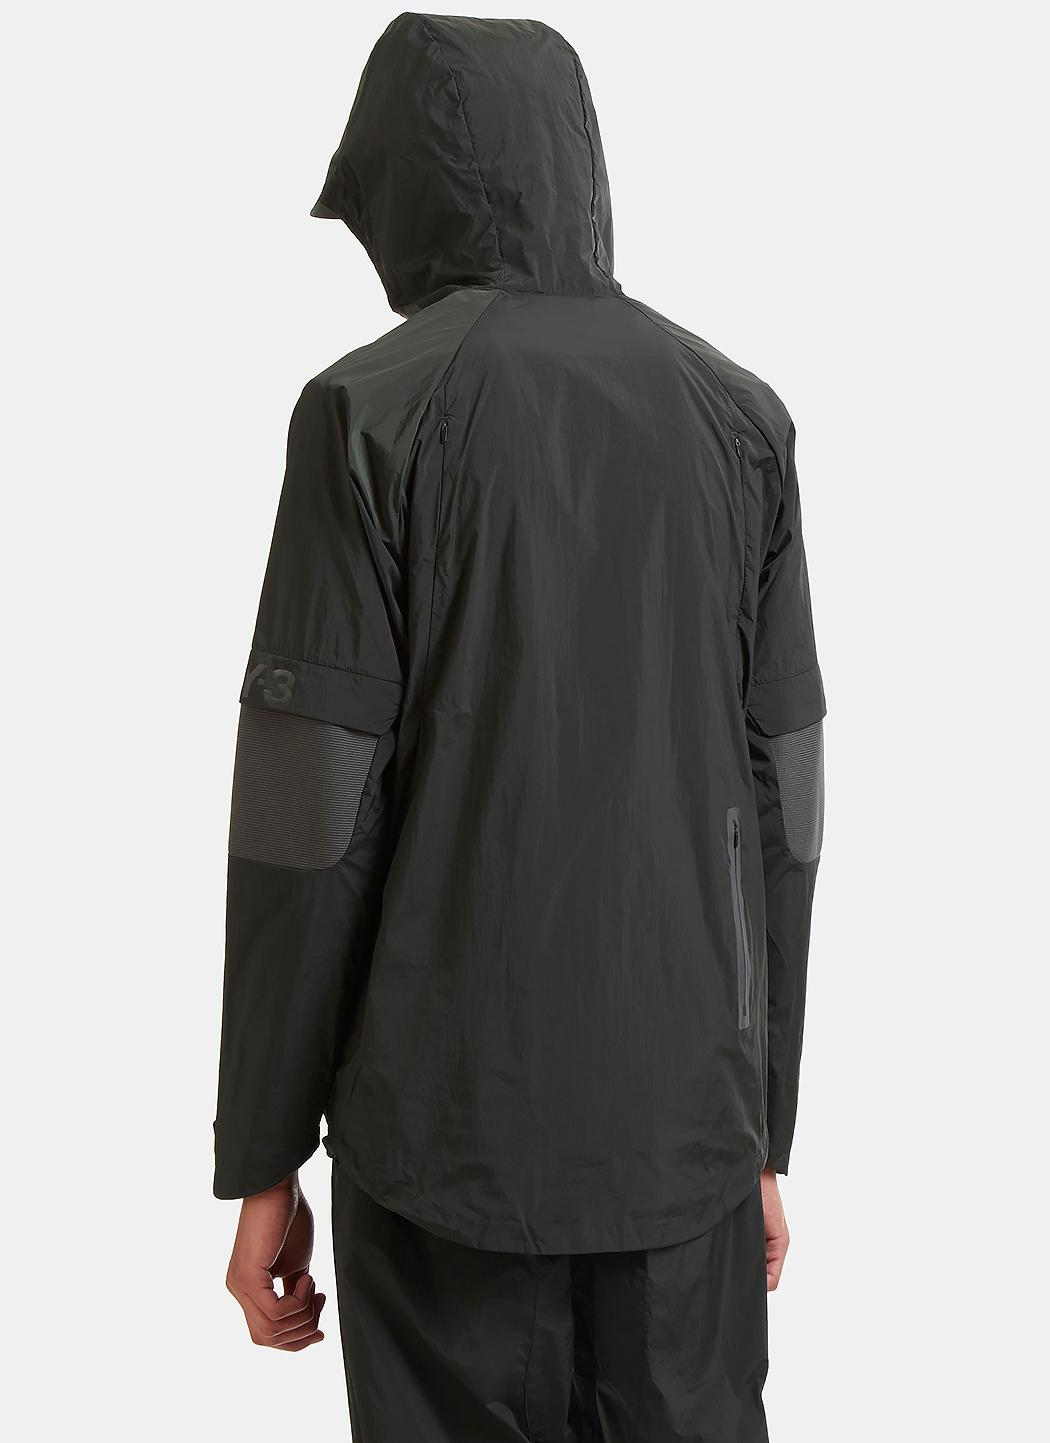 Y-3 Synthetic Ribbed Panel Technical Nylon Jacket In Dark Khaki for Men